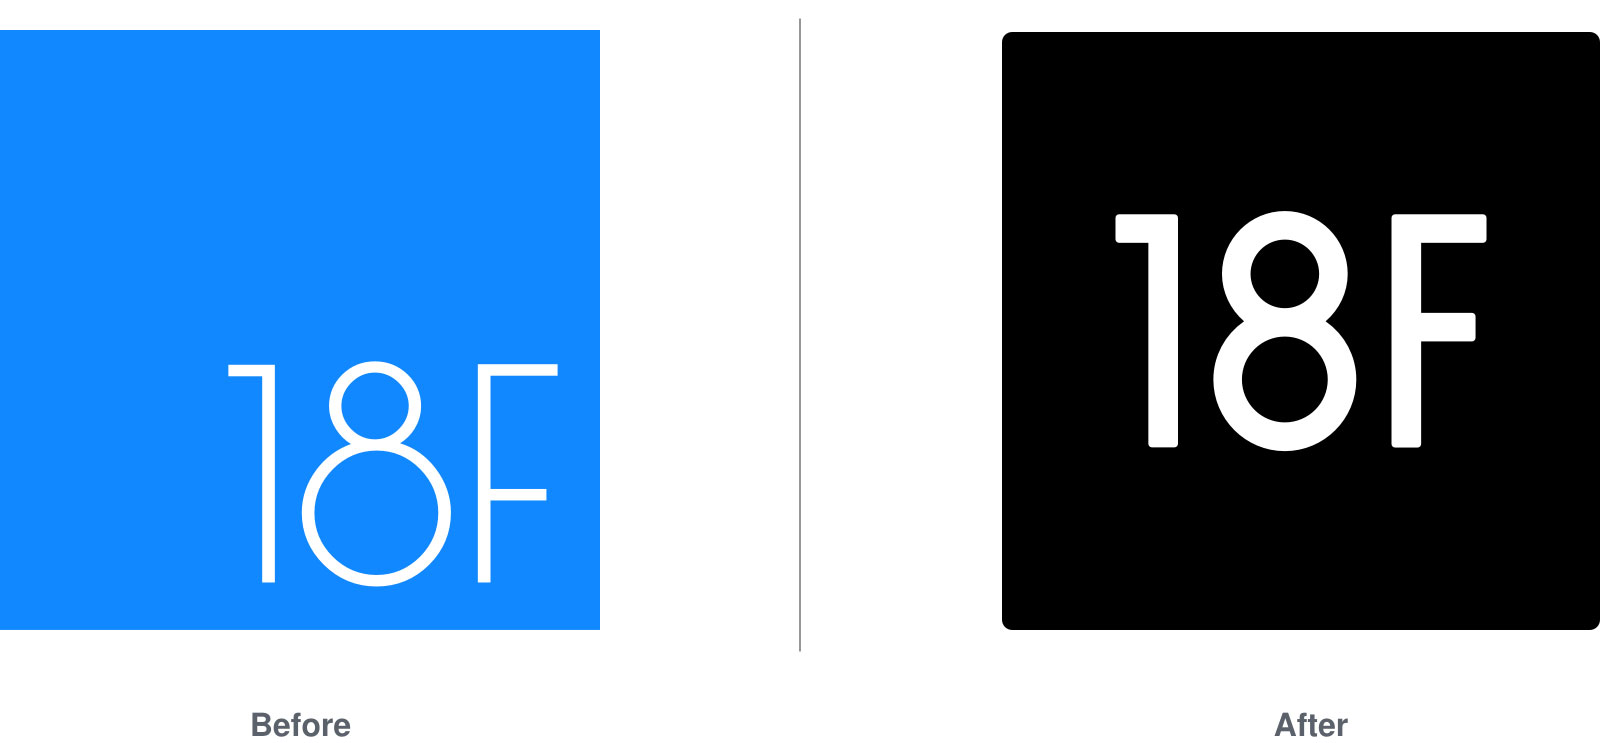 The old blue 18F logo and the new black 18F logo